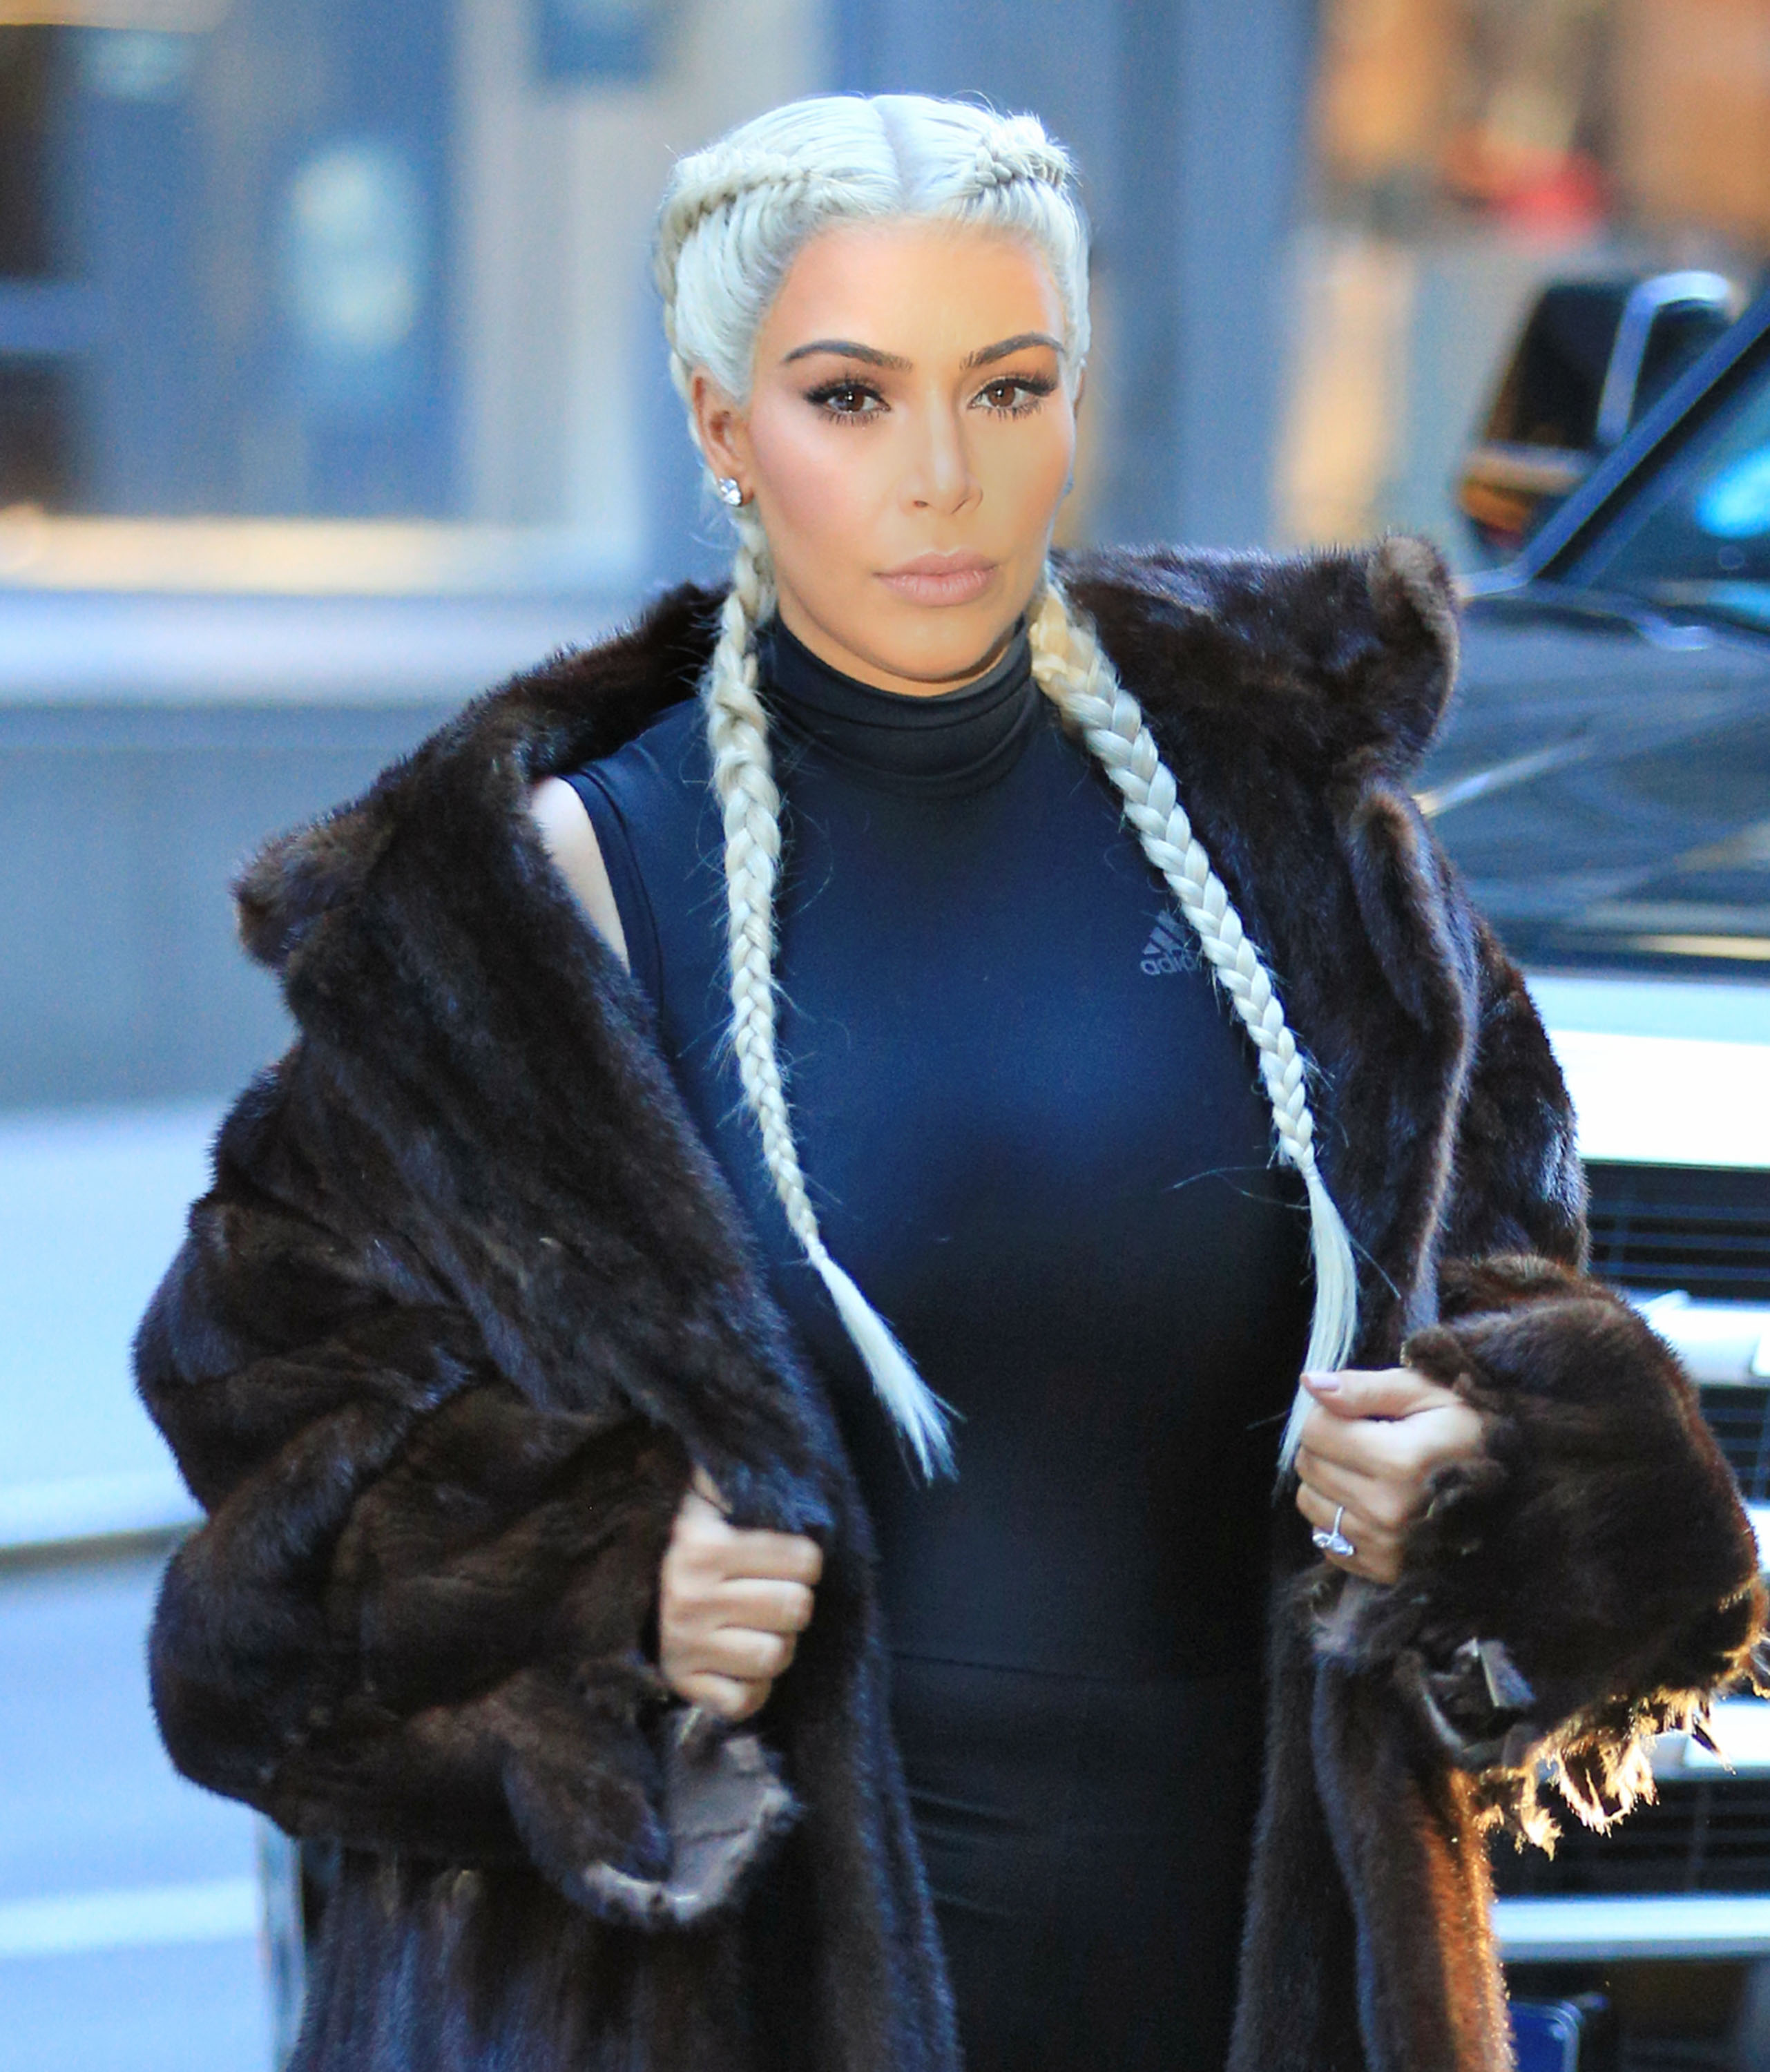 Kim Kardashian wears sports tights under fur coat with braided blonde hair in NYC Pictured: Kim Kardashian Ref: SPL1226850 130216 Picture by: Jackson Lee / Splash News Splash News and Pictures Los Angeles:310-821-2666 New York: 212-619-2666 London: 870-934-2666 photodesk@splashnews.com